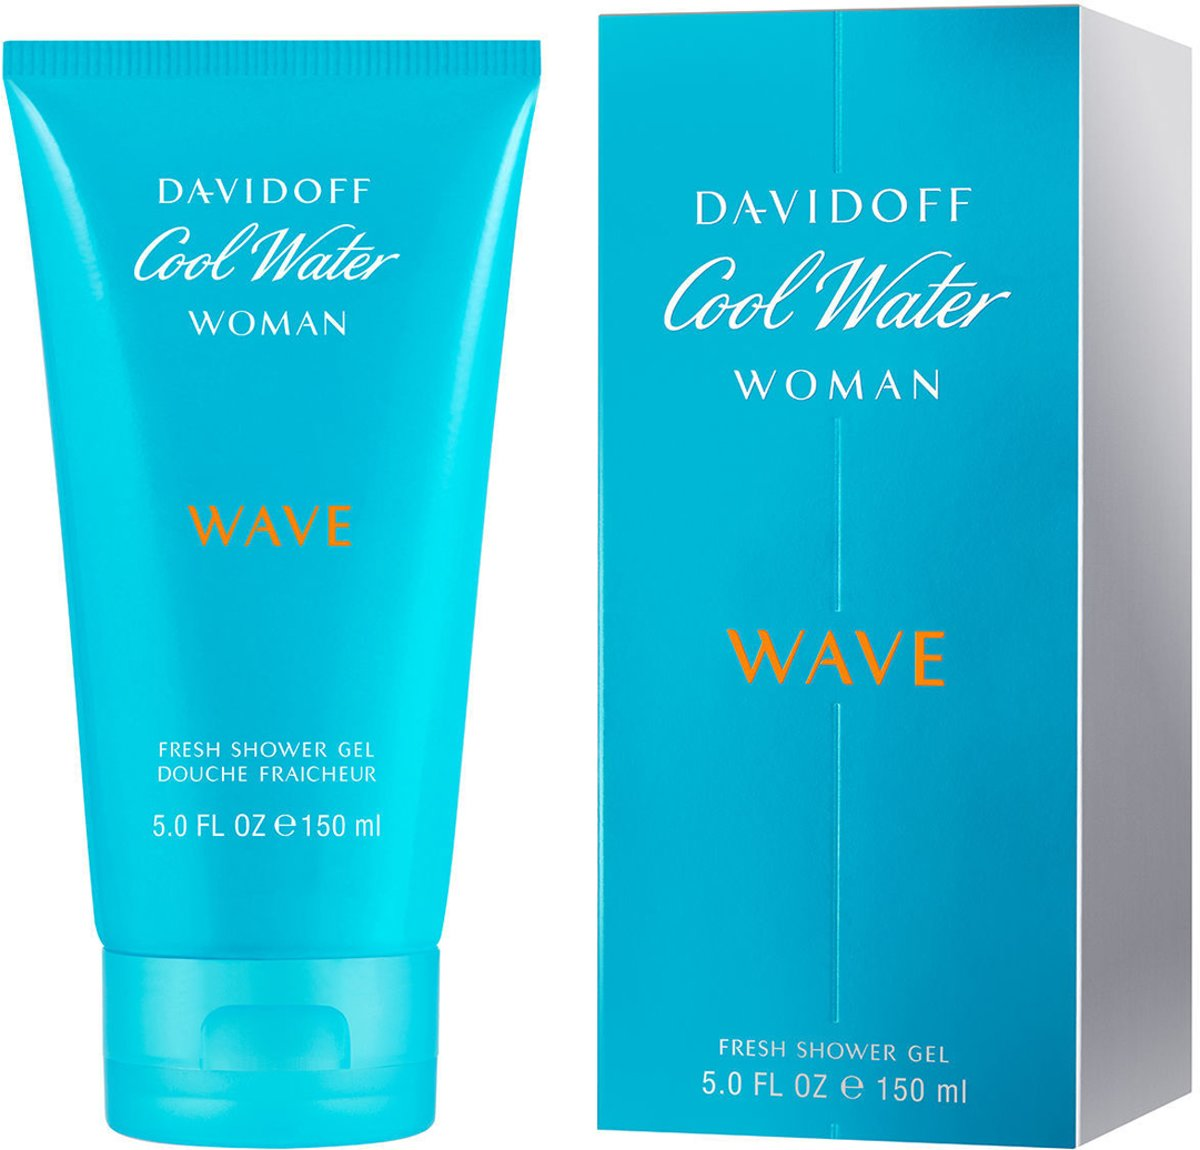 Davidoff coolwater wave showergel 150 ml